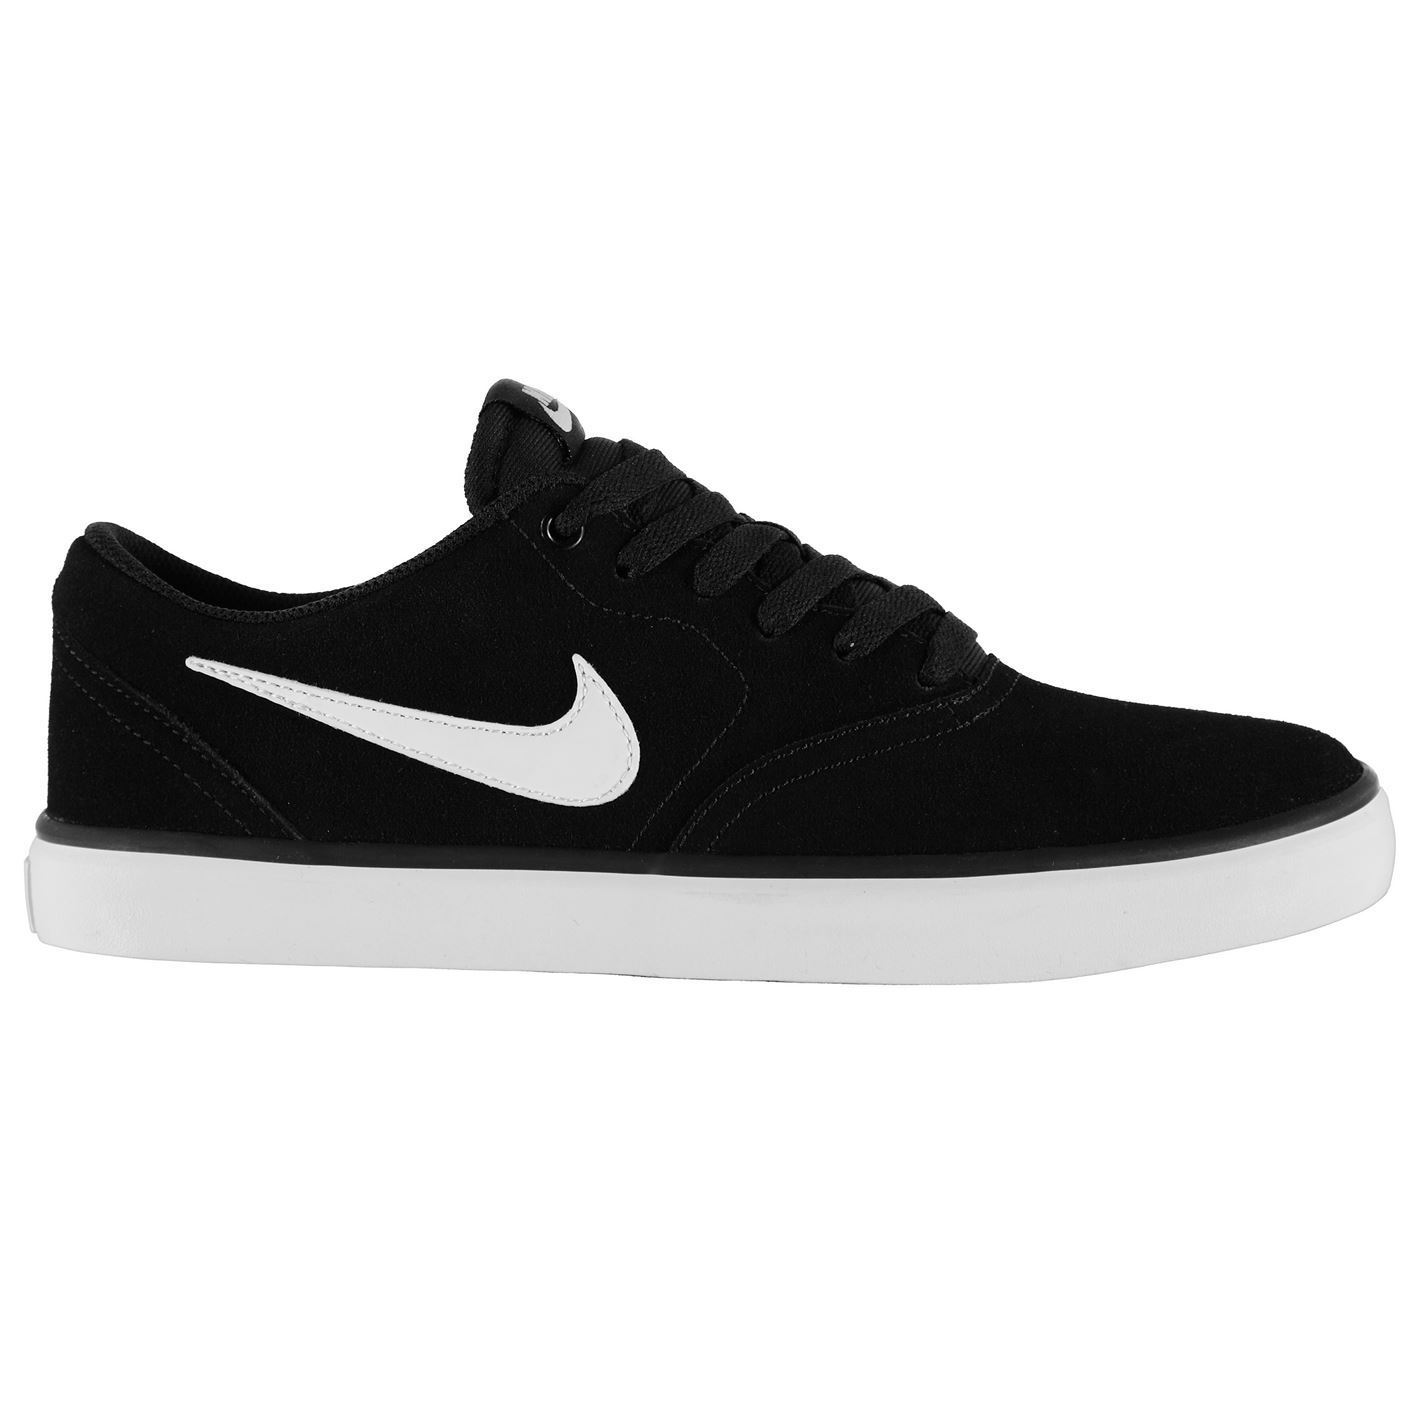 Details about Nike SB Check Solar Skate Shoes Mens Black/White Casual  Trainers Sneakers